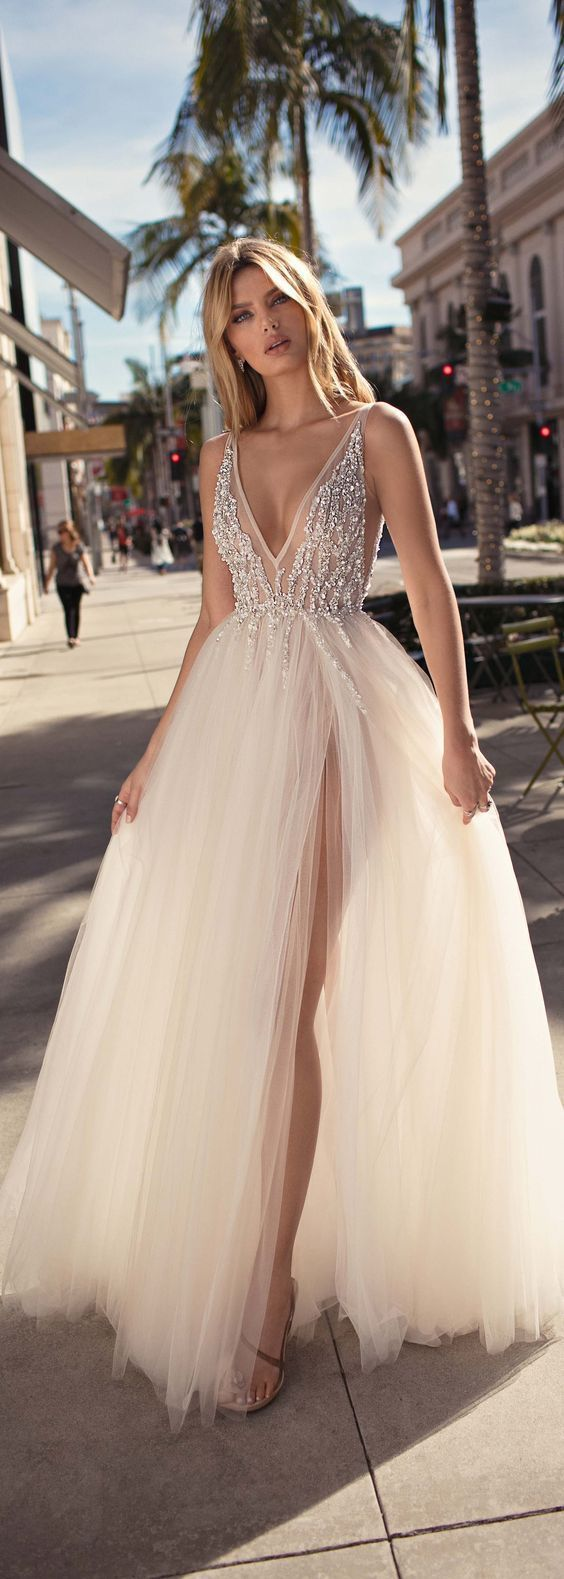 Deep V Neck Prom Dress,long Weeding Dress,party Dress With Split, Floor-length #…